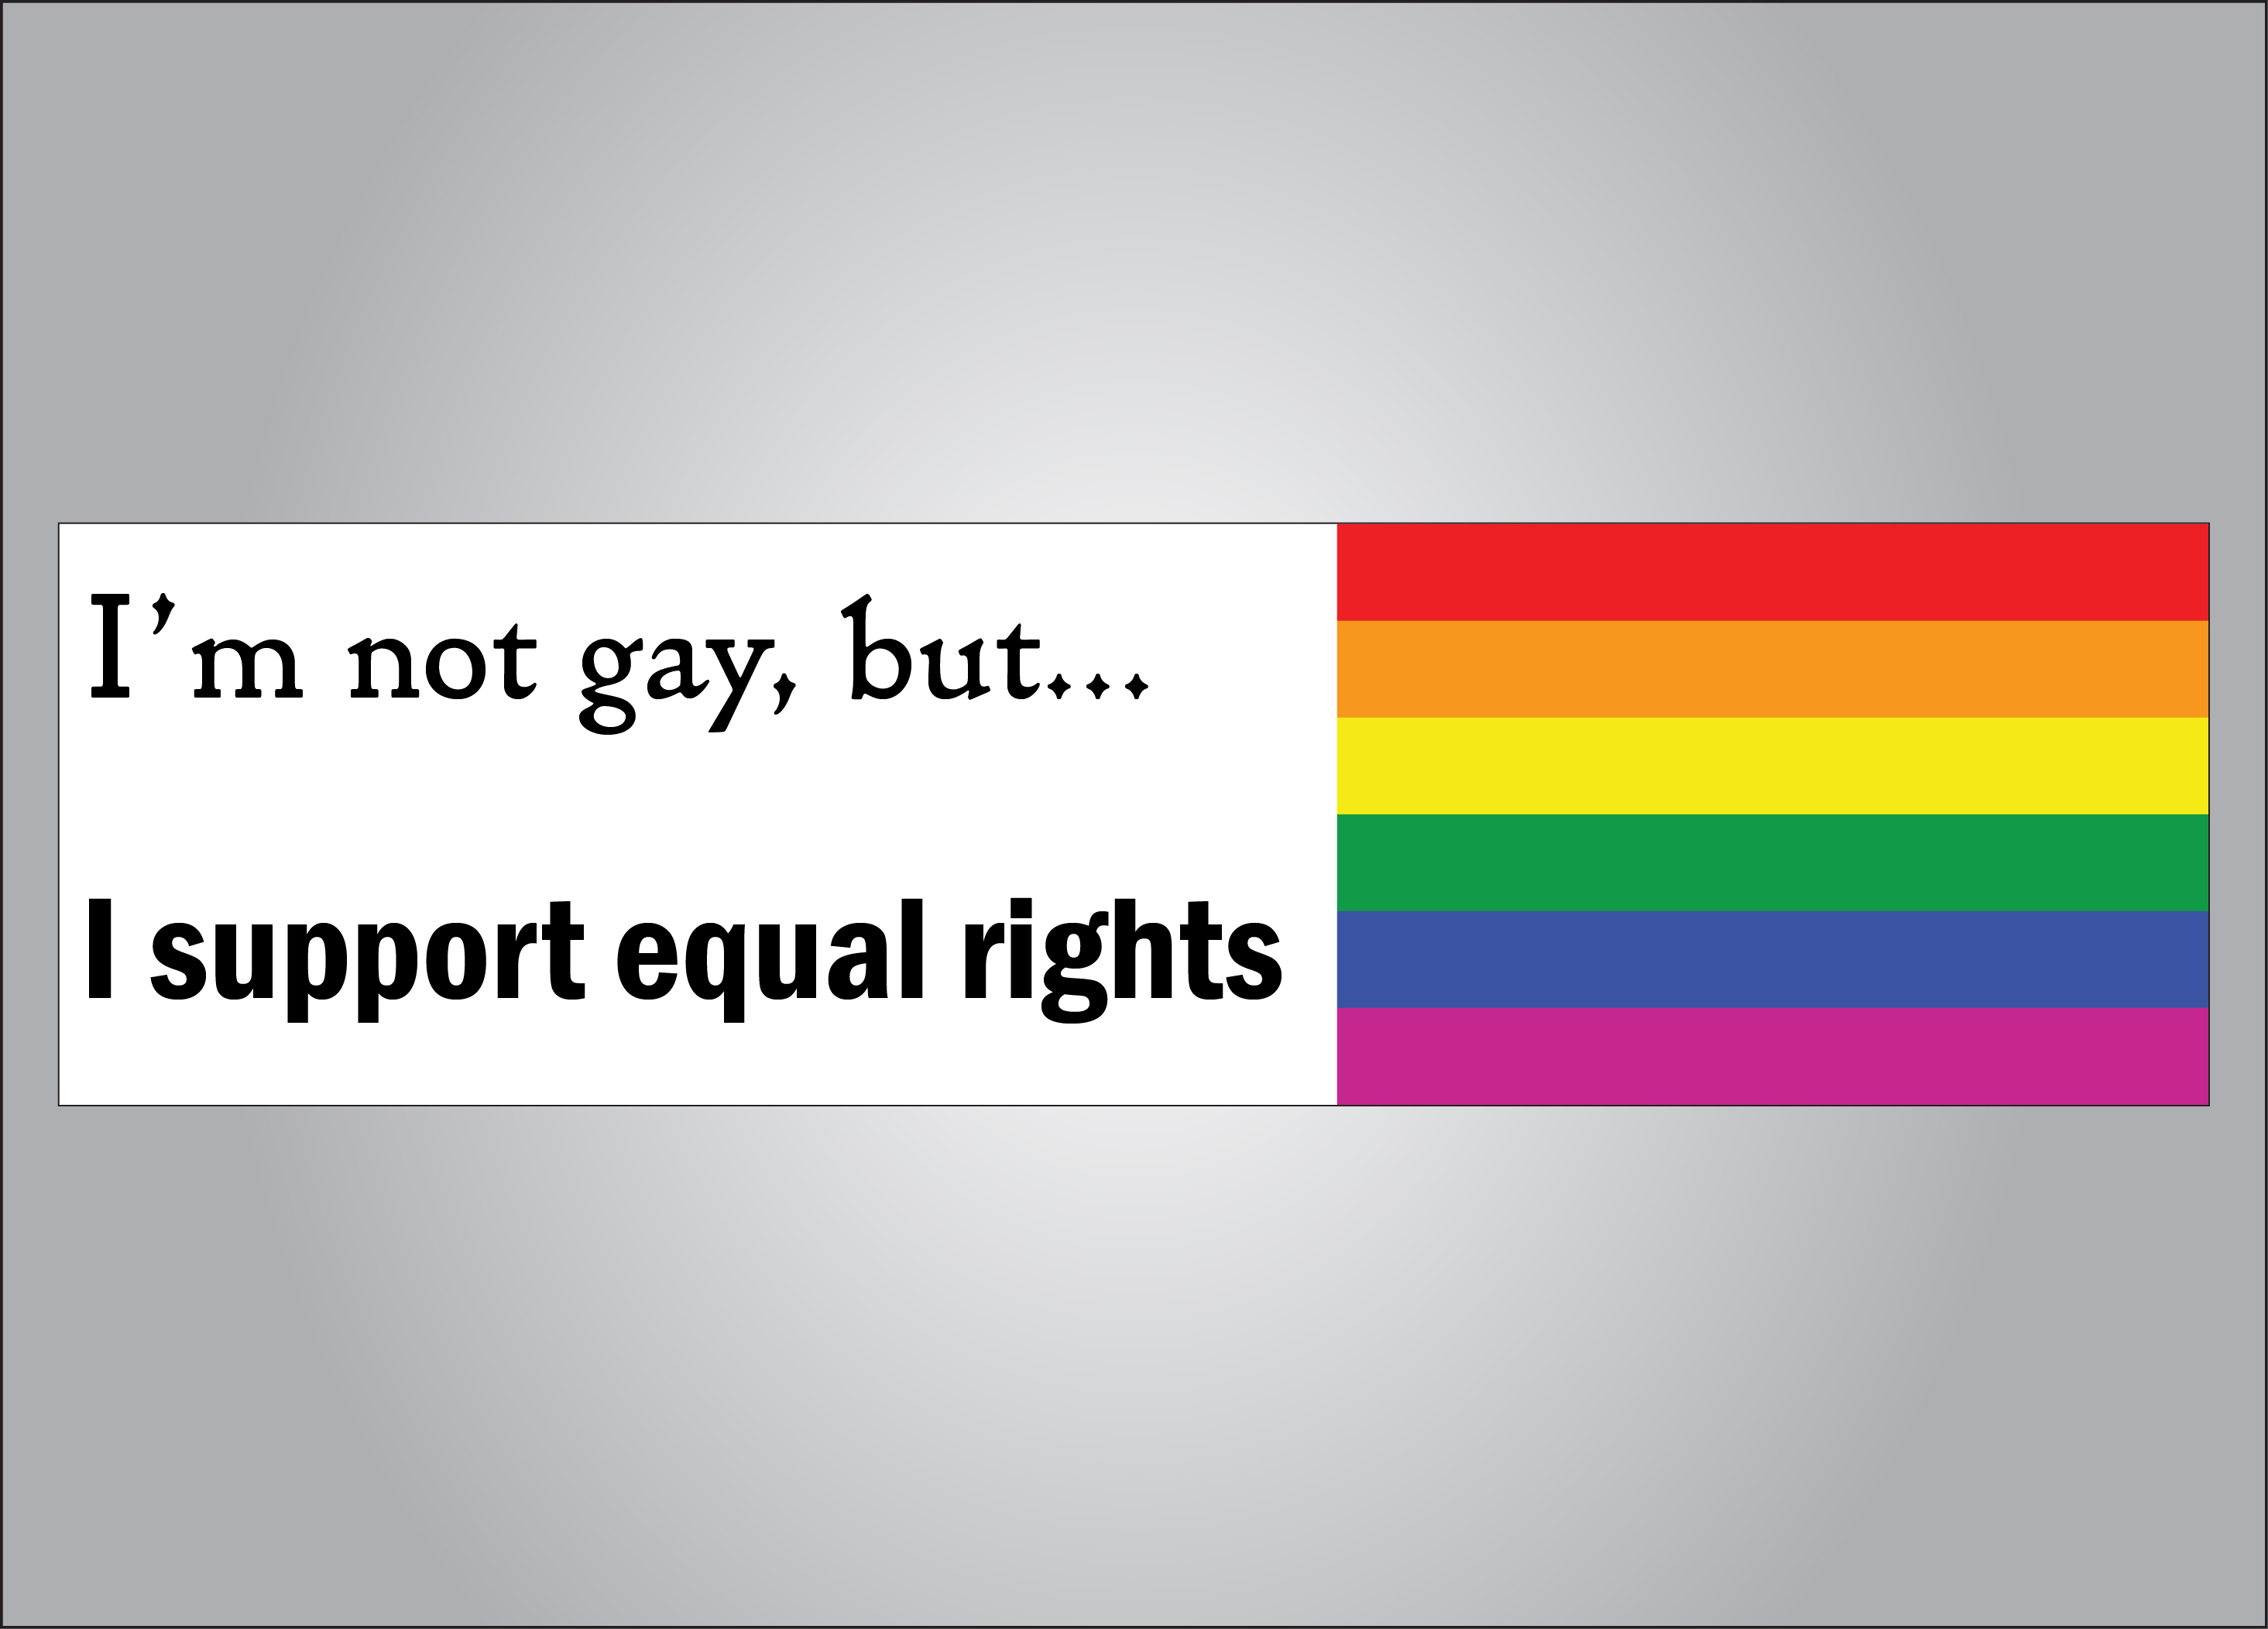 Equal rights for all is a fight worth fighting